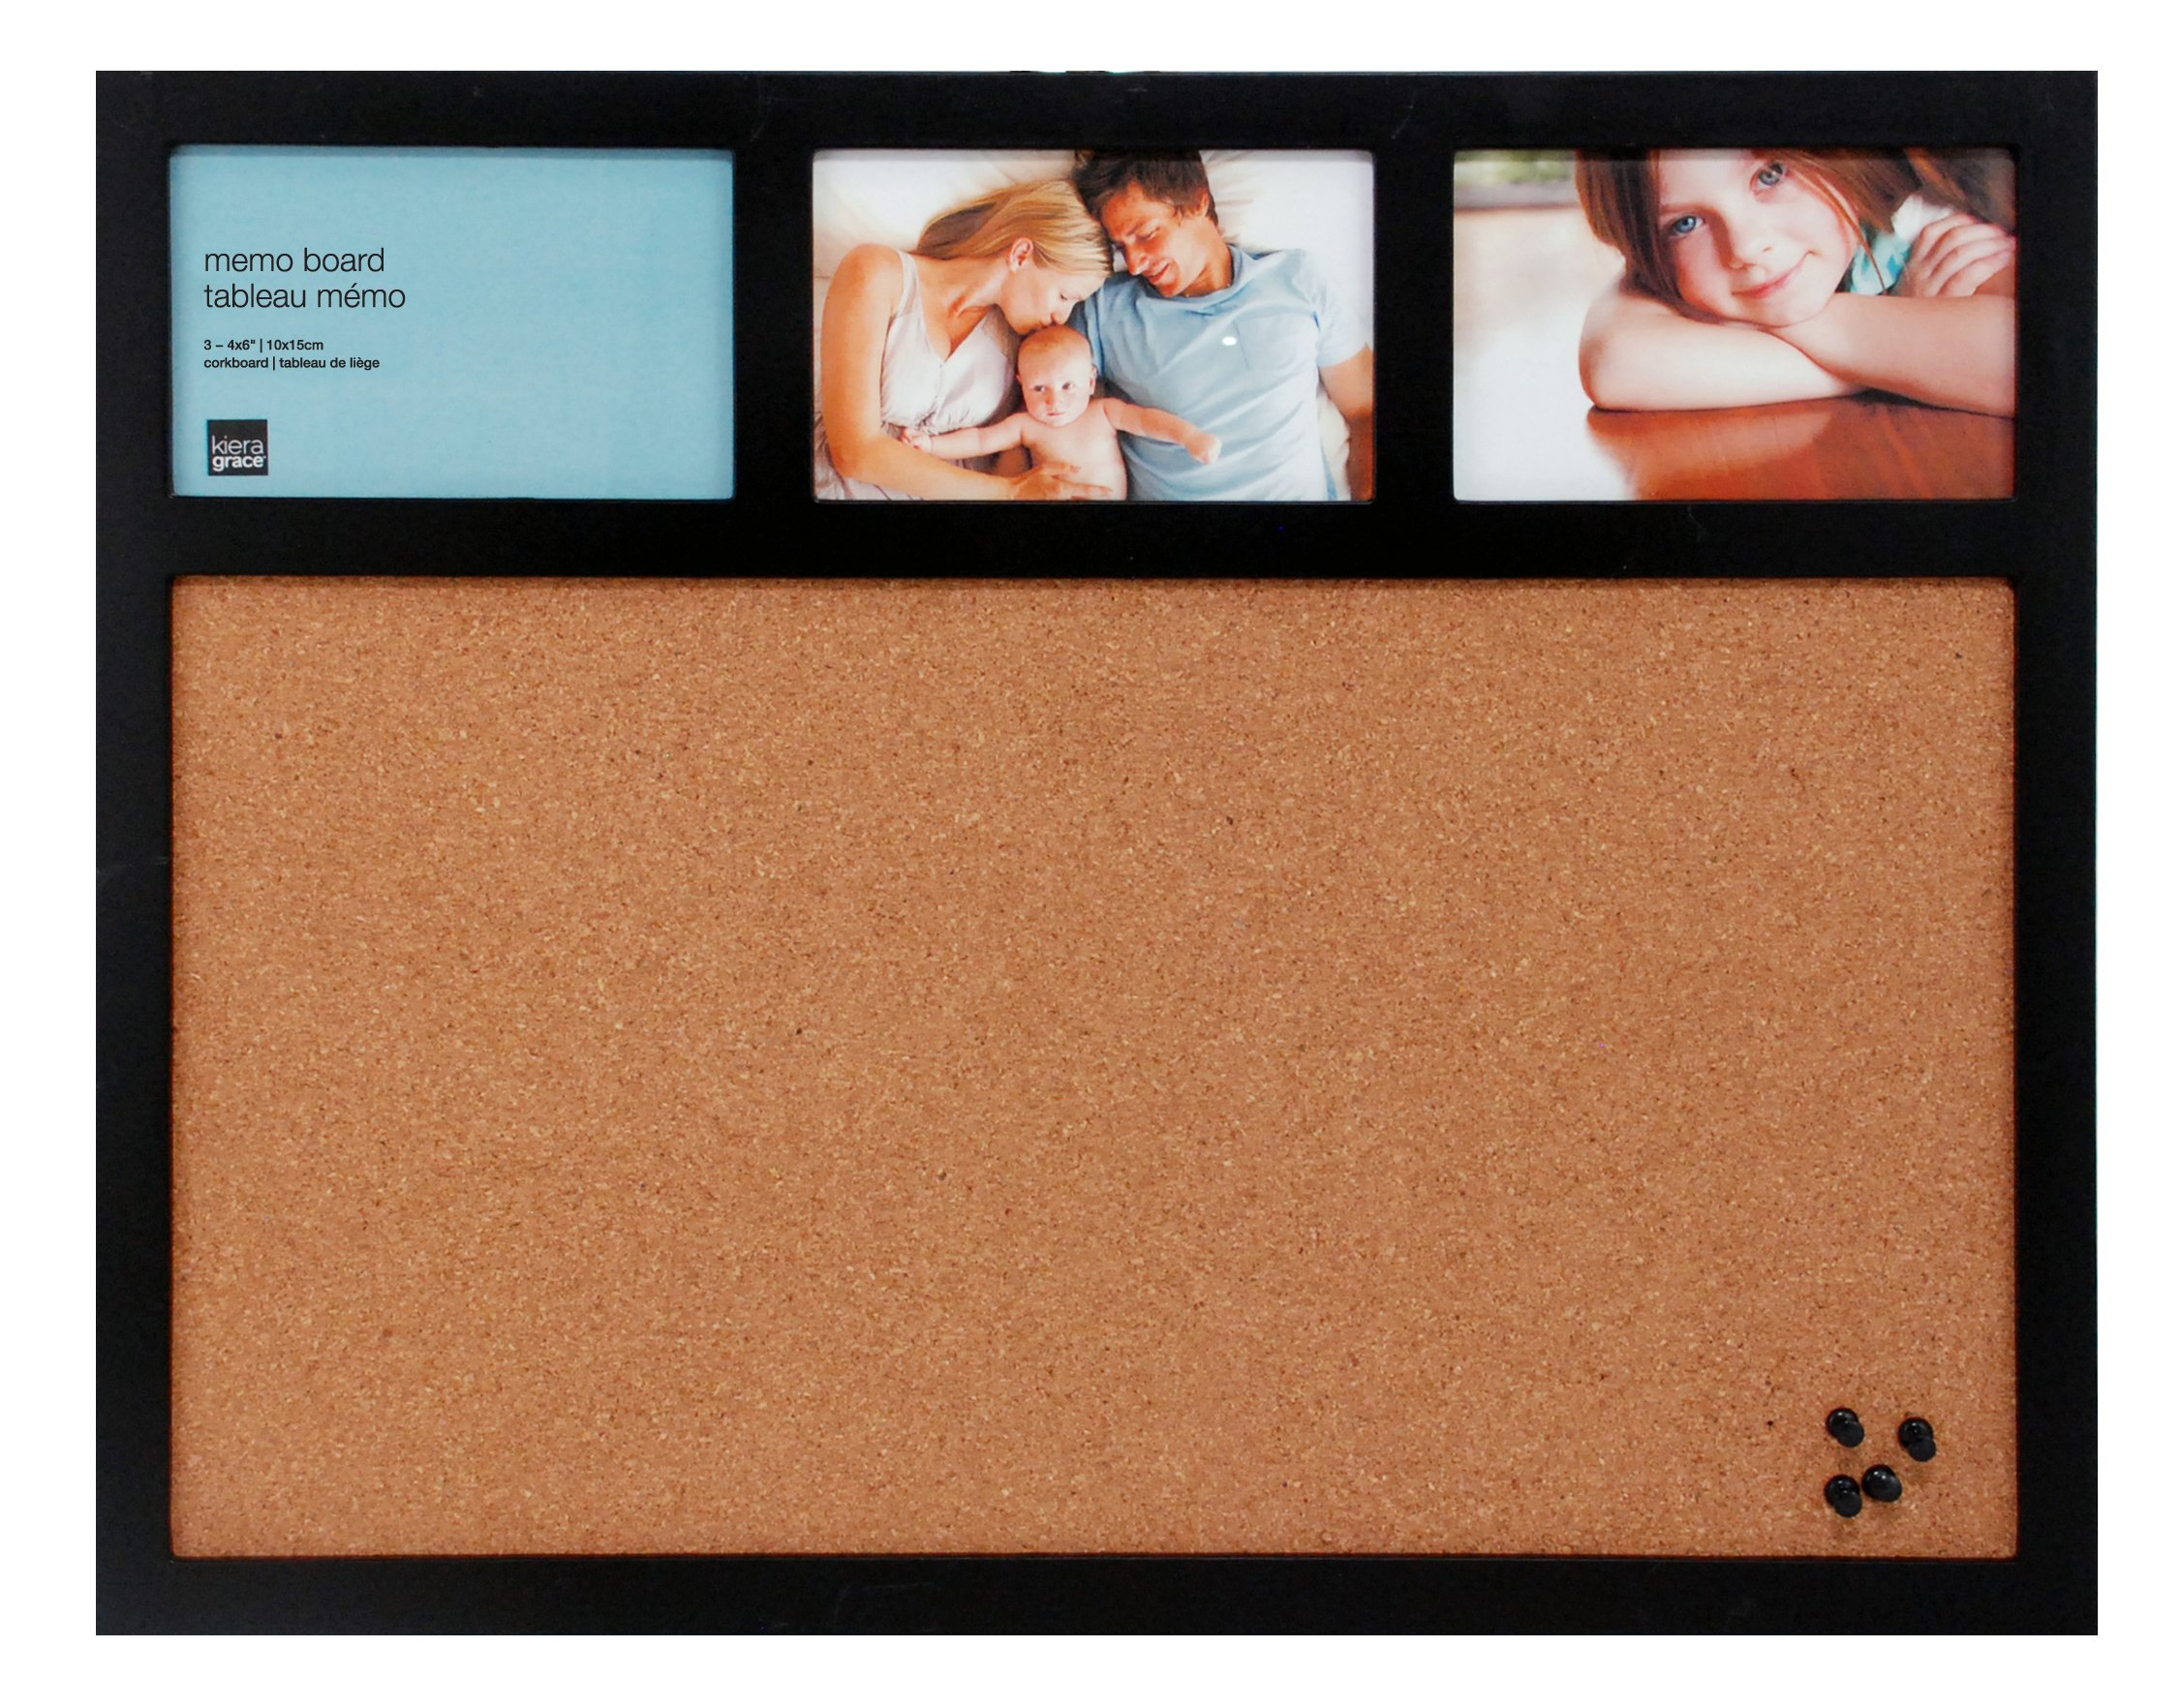 Kiera Grace Cork Board and Collage Frame Combo, 16 by 20 Inch Holds 3-4 by 6 Inch Photos, Black with 4 Pushpins